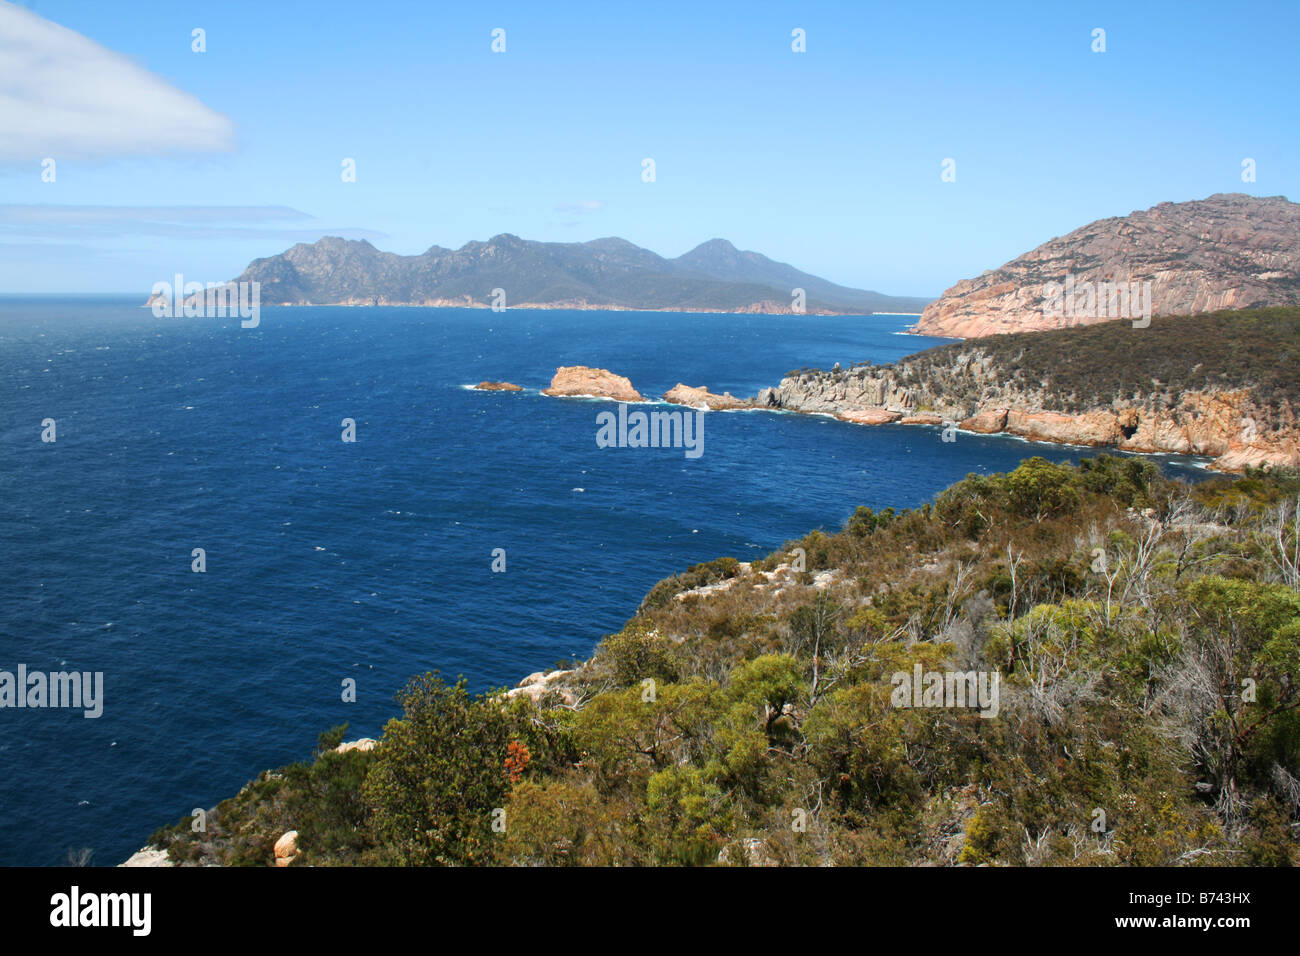 The Hazards, as viewed from the Freycinet lighthouse. - Stock Image